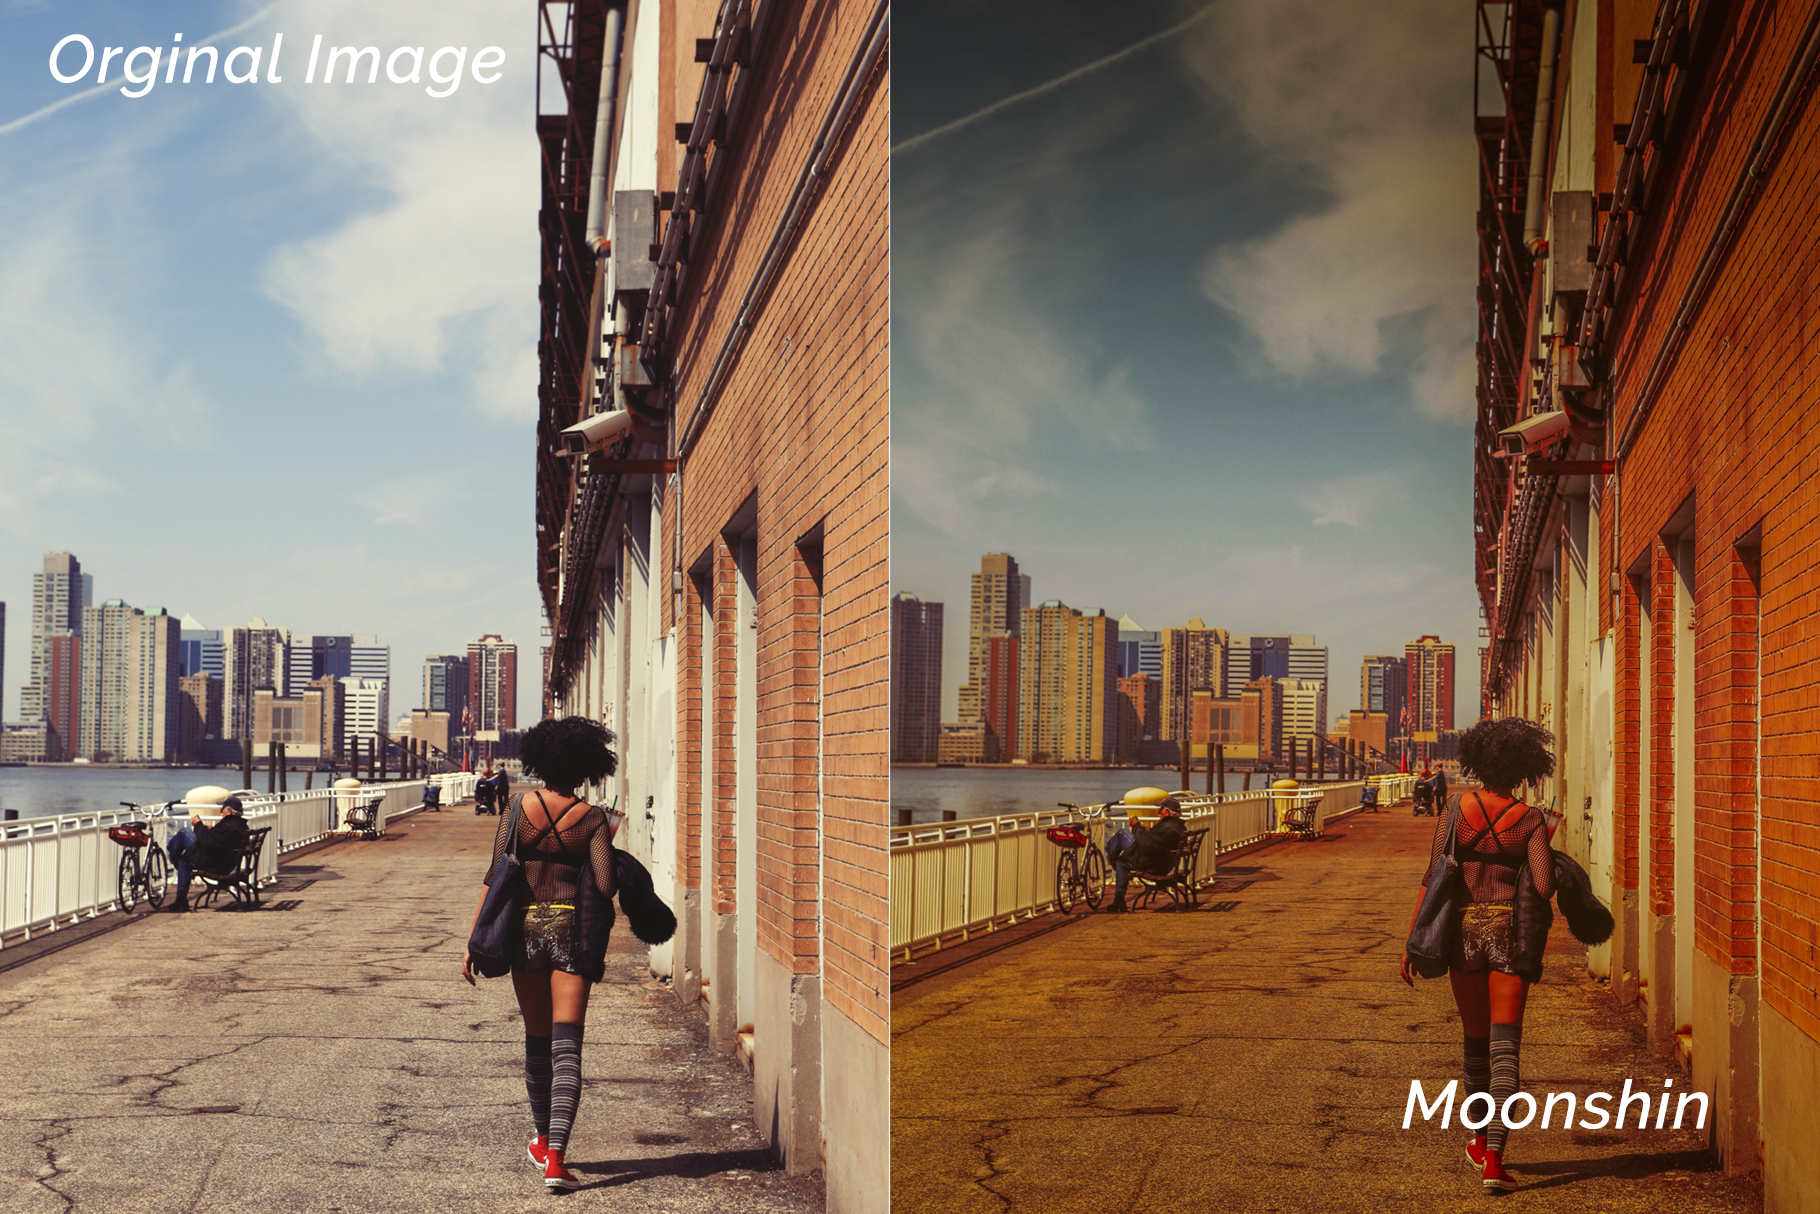 Hot and Real Mixed v-1 Lightroom Presets example image 7